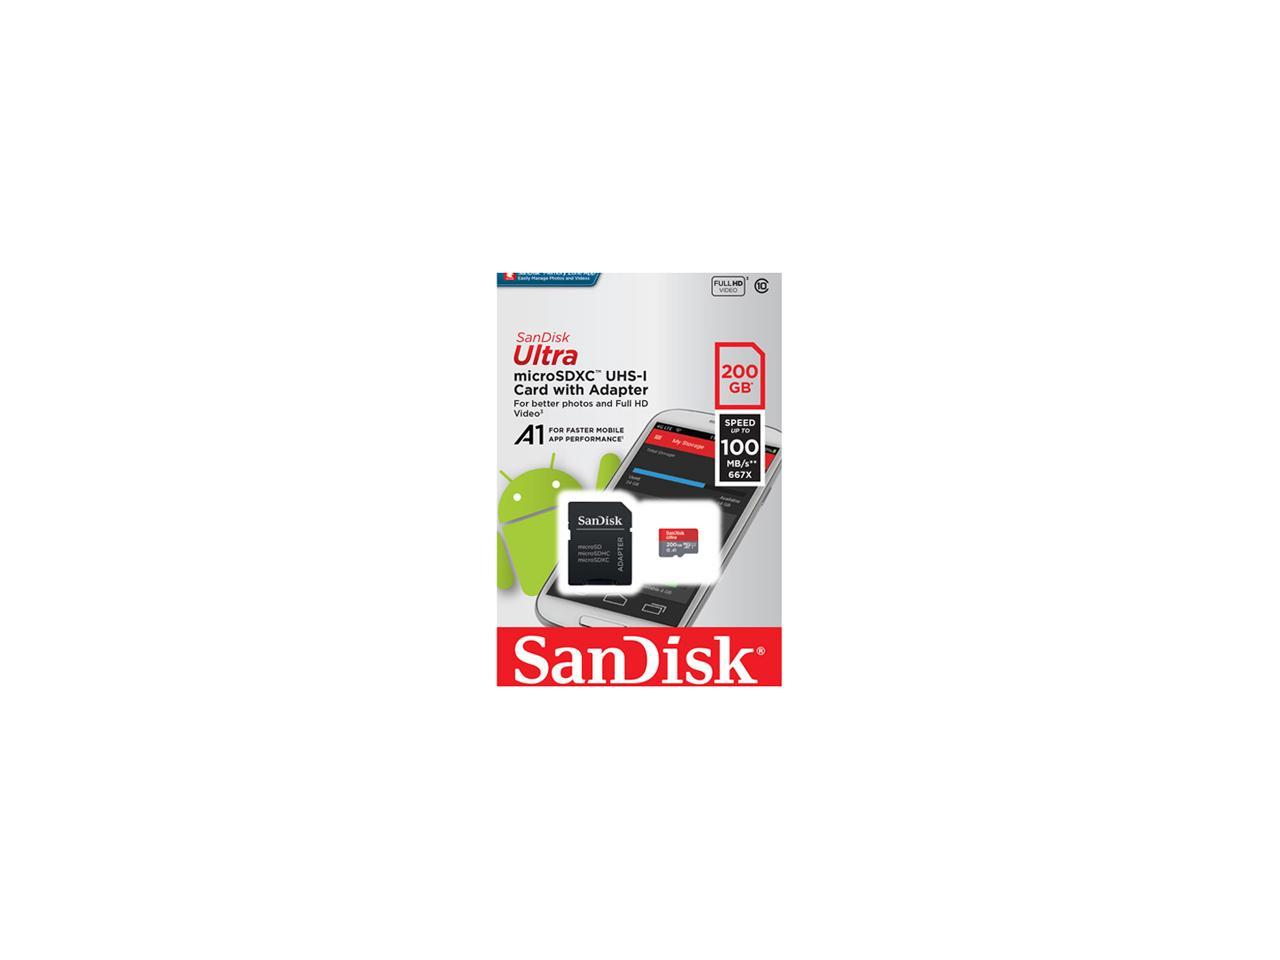 100MBs A1 U1 C10 Works with SanDisk SanDisk Ultra 200GB MicroSDXC Verified for ICEMOBILE Prime 4.0 by SanFlash